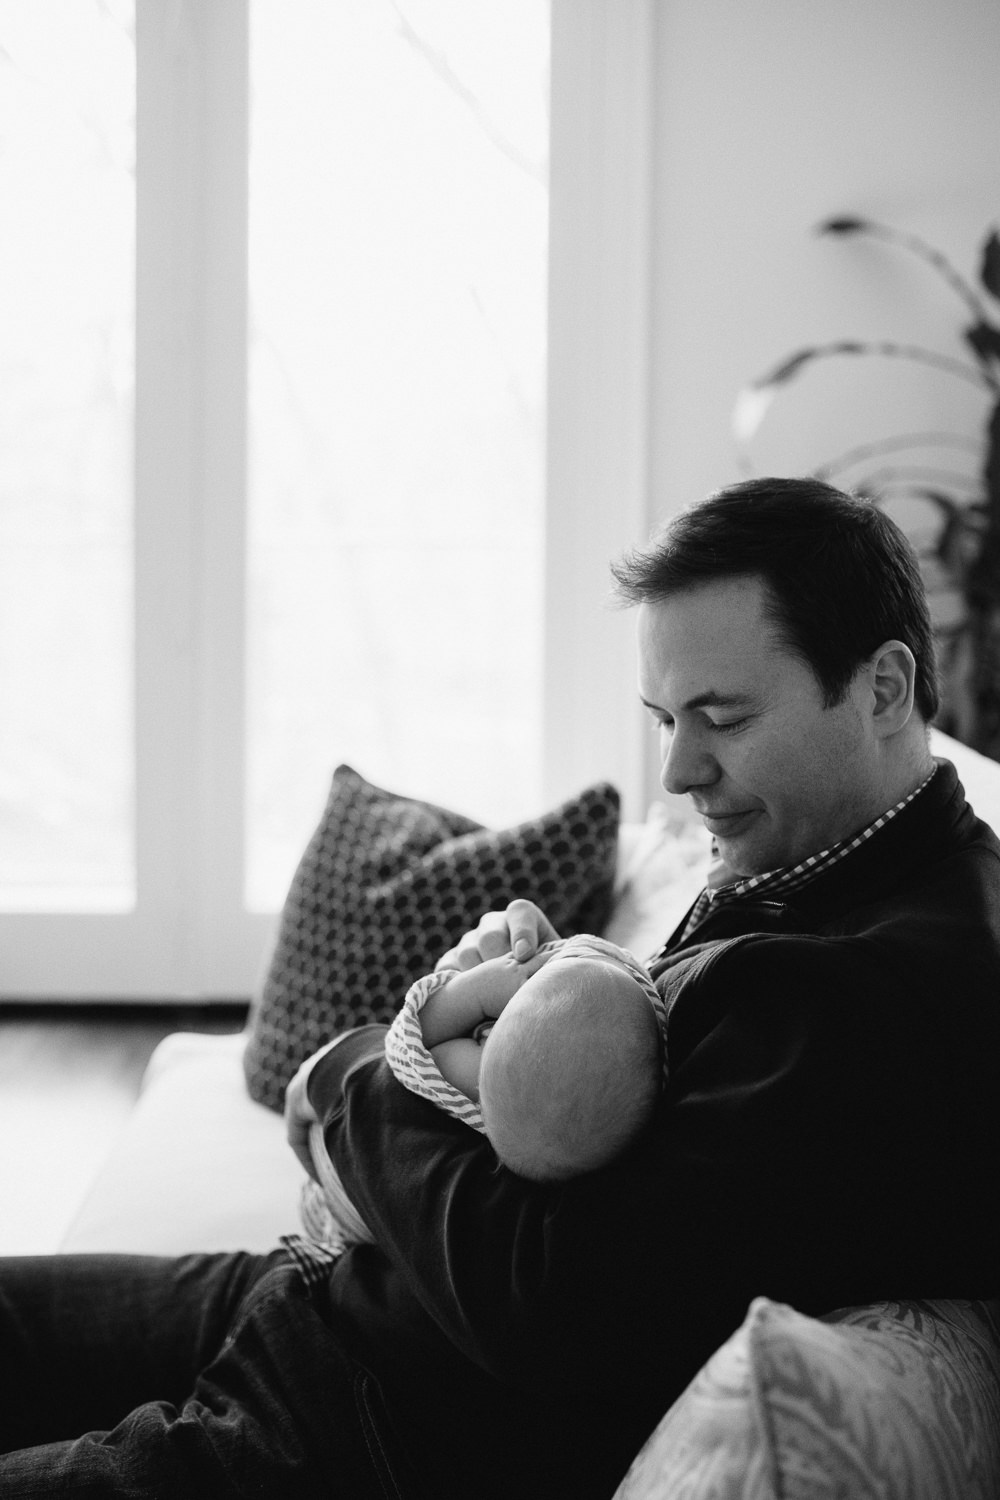 dad holding and looking at 2 week old baby boy - Barrie lifestyle photos